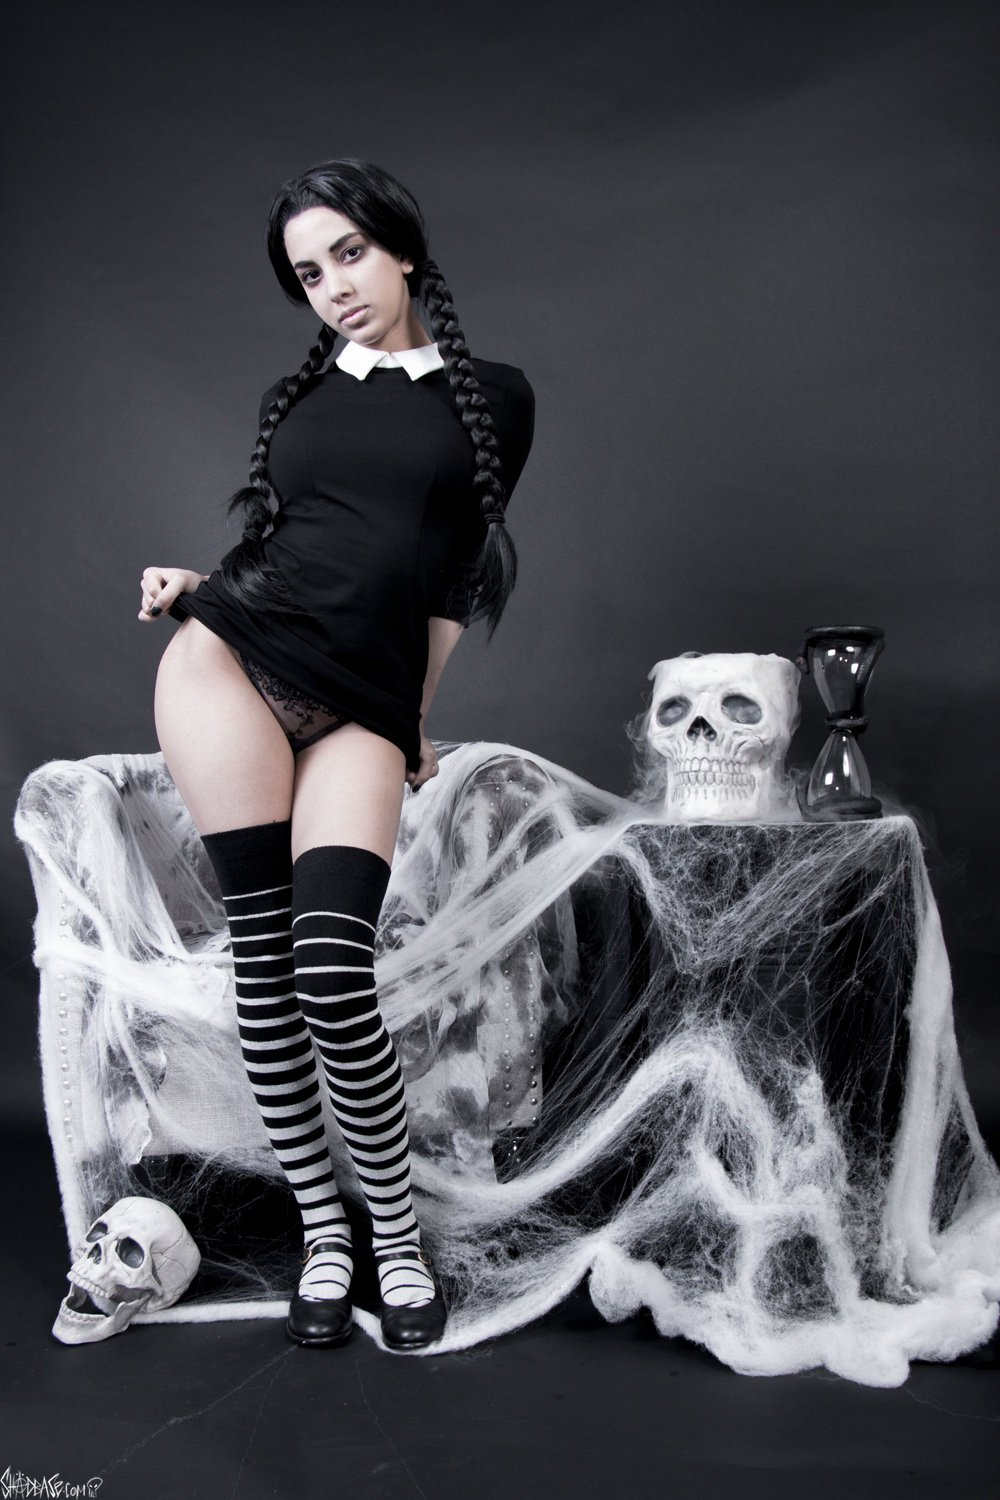 Wednesday Addams All Grown Up (Swimsuit Succubus)